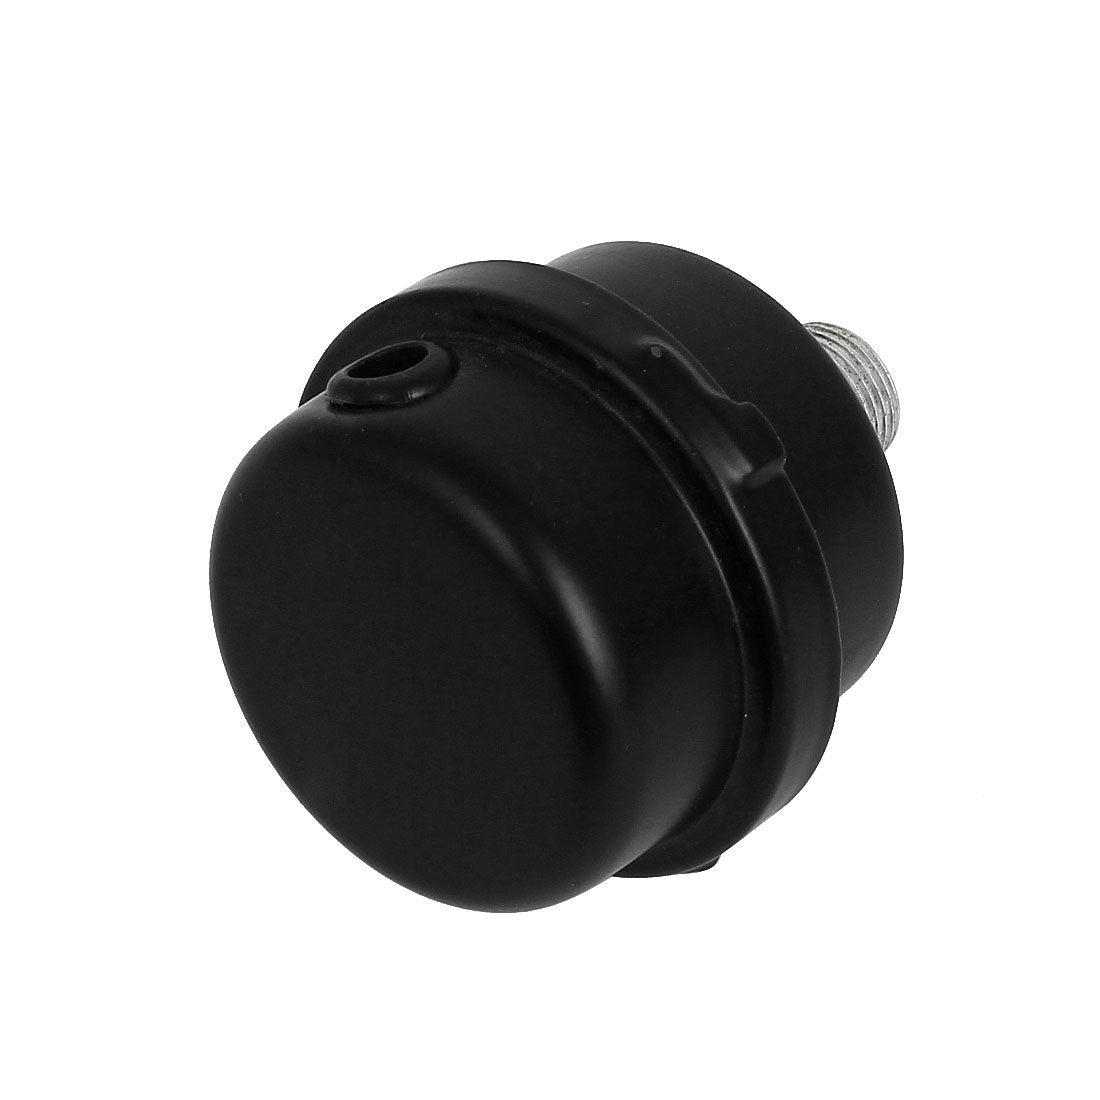 16mm Diameter Male Silent Air Compressor Parts Muffler Silencer Filter Black